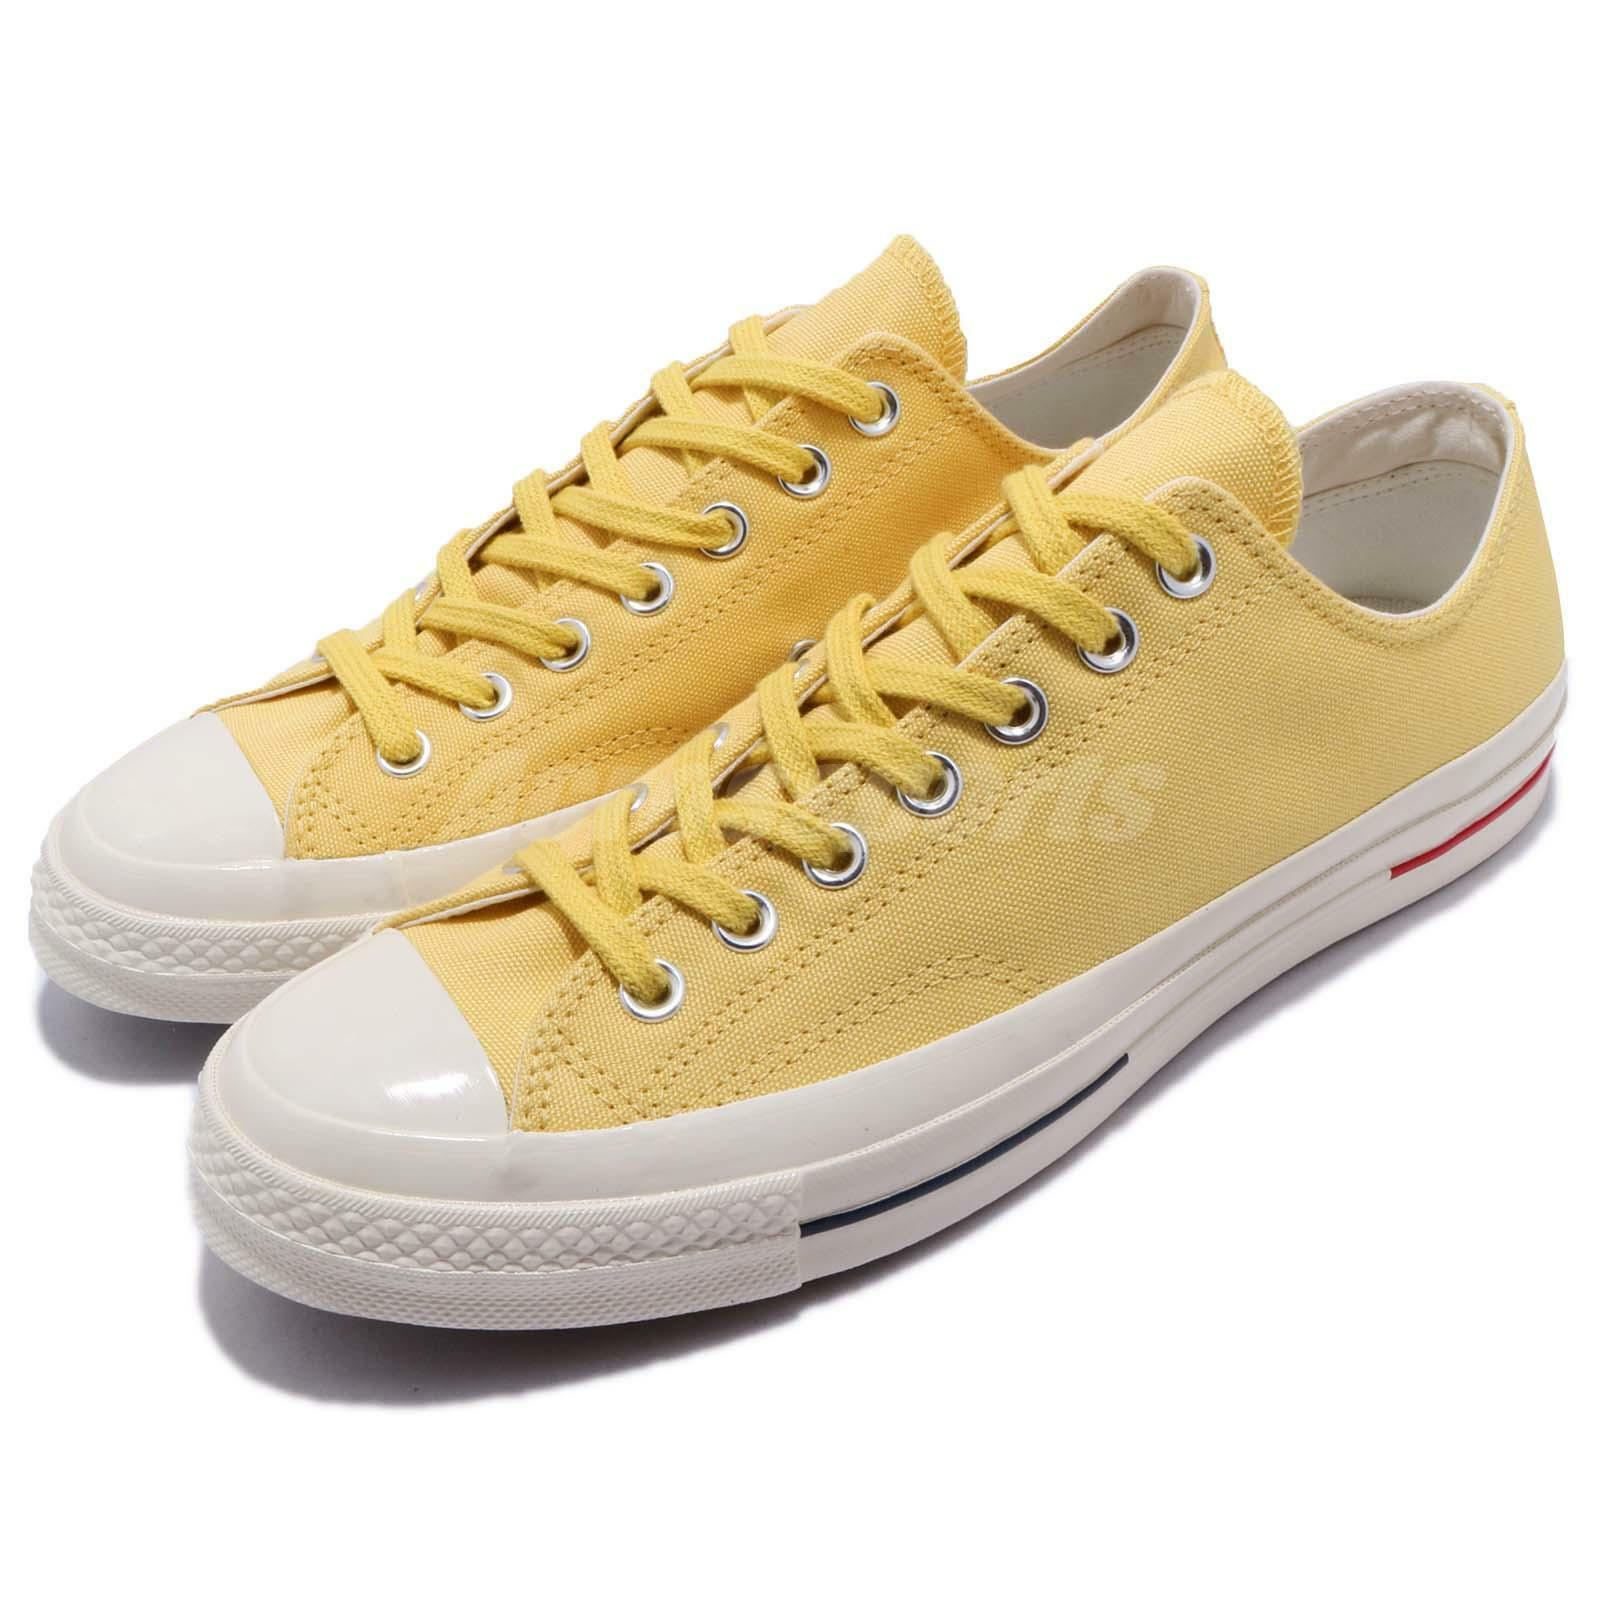 Converse Chuck Taylor All Star 70 1970s Heritage Court OX Low Yellow Uomo 160494C